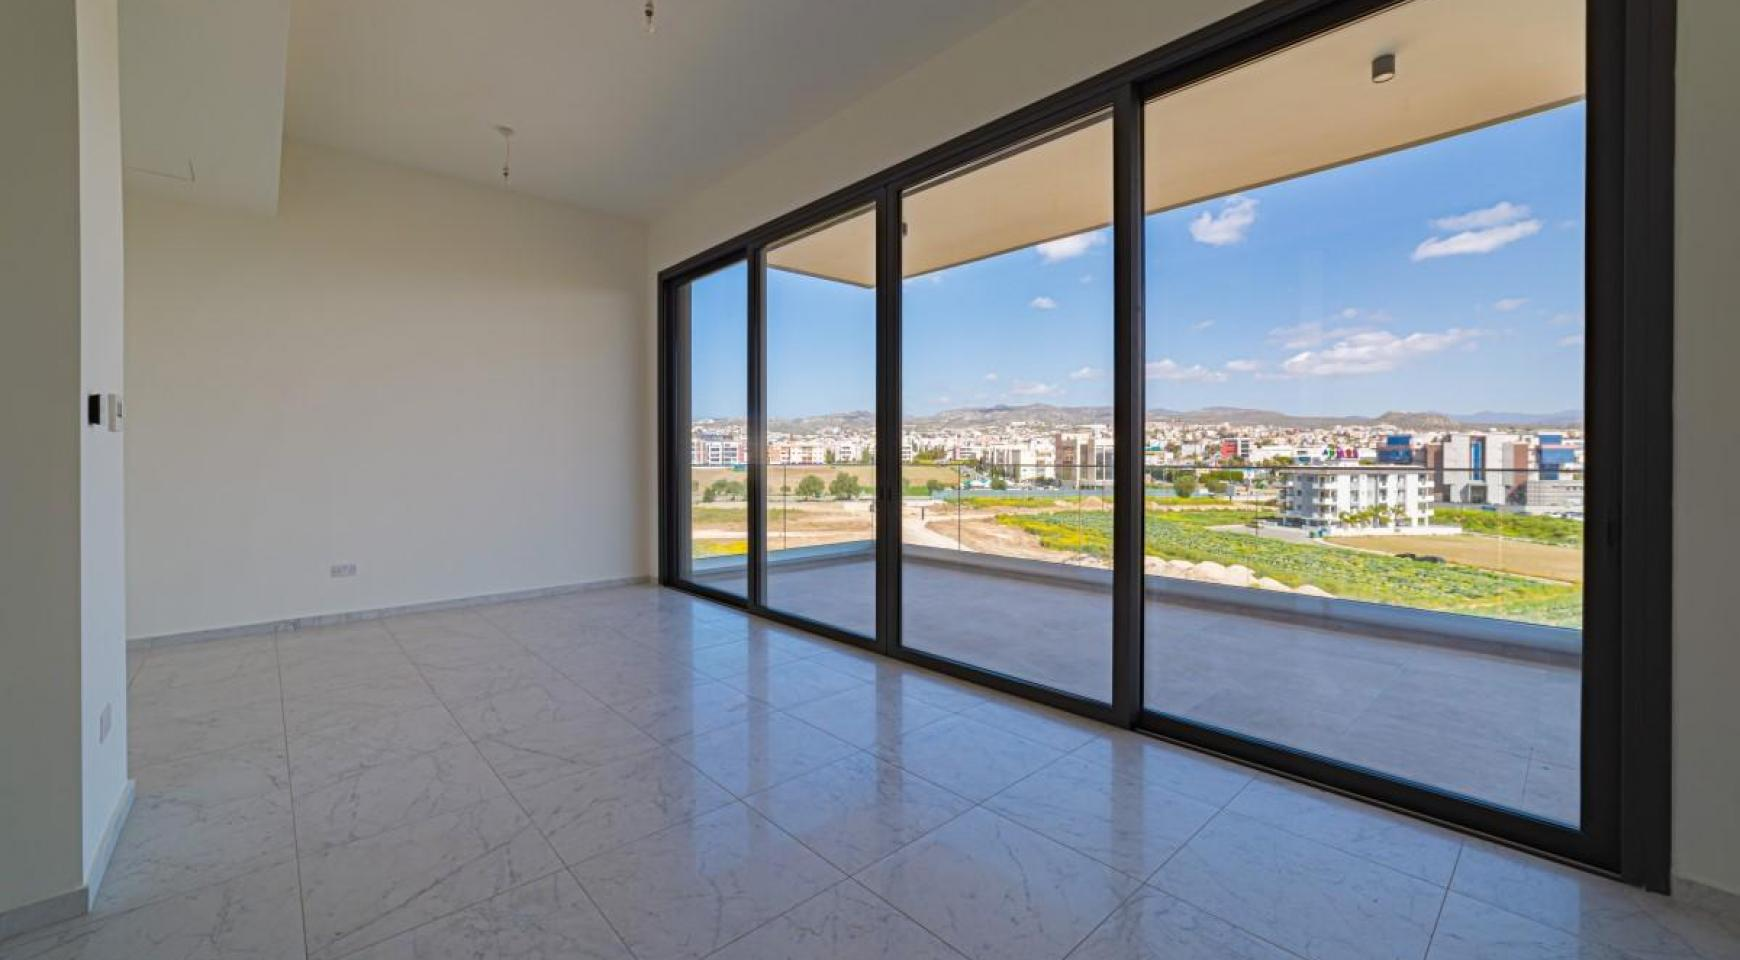 Urban City Residences, Block A. New Spacious 2 Bedroom Apartment 202 in the City Centre - 6